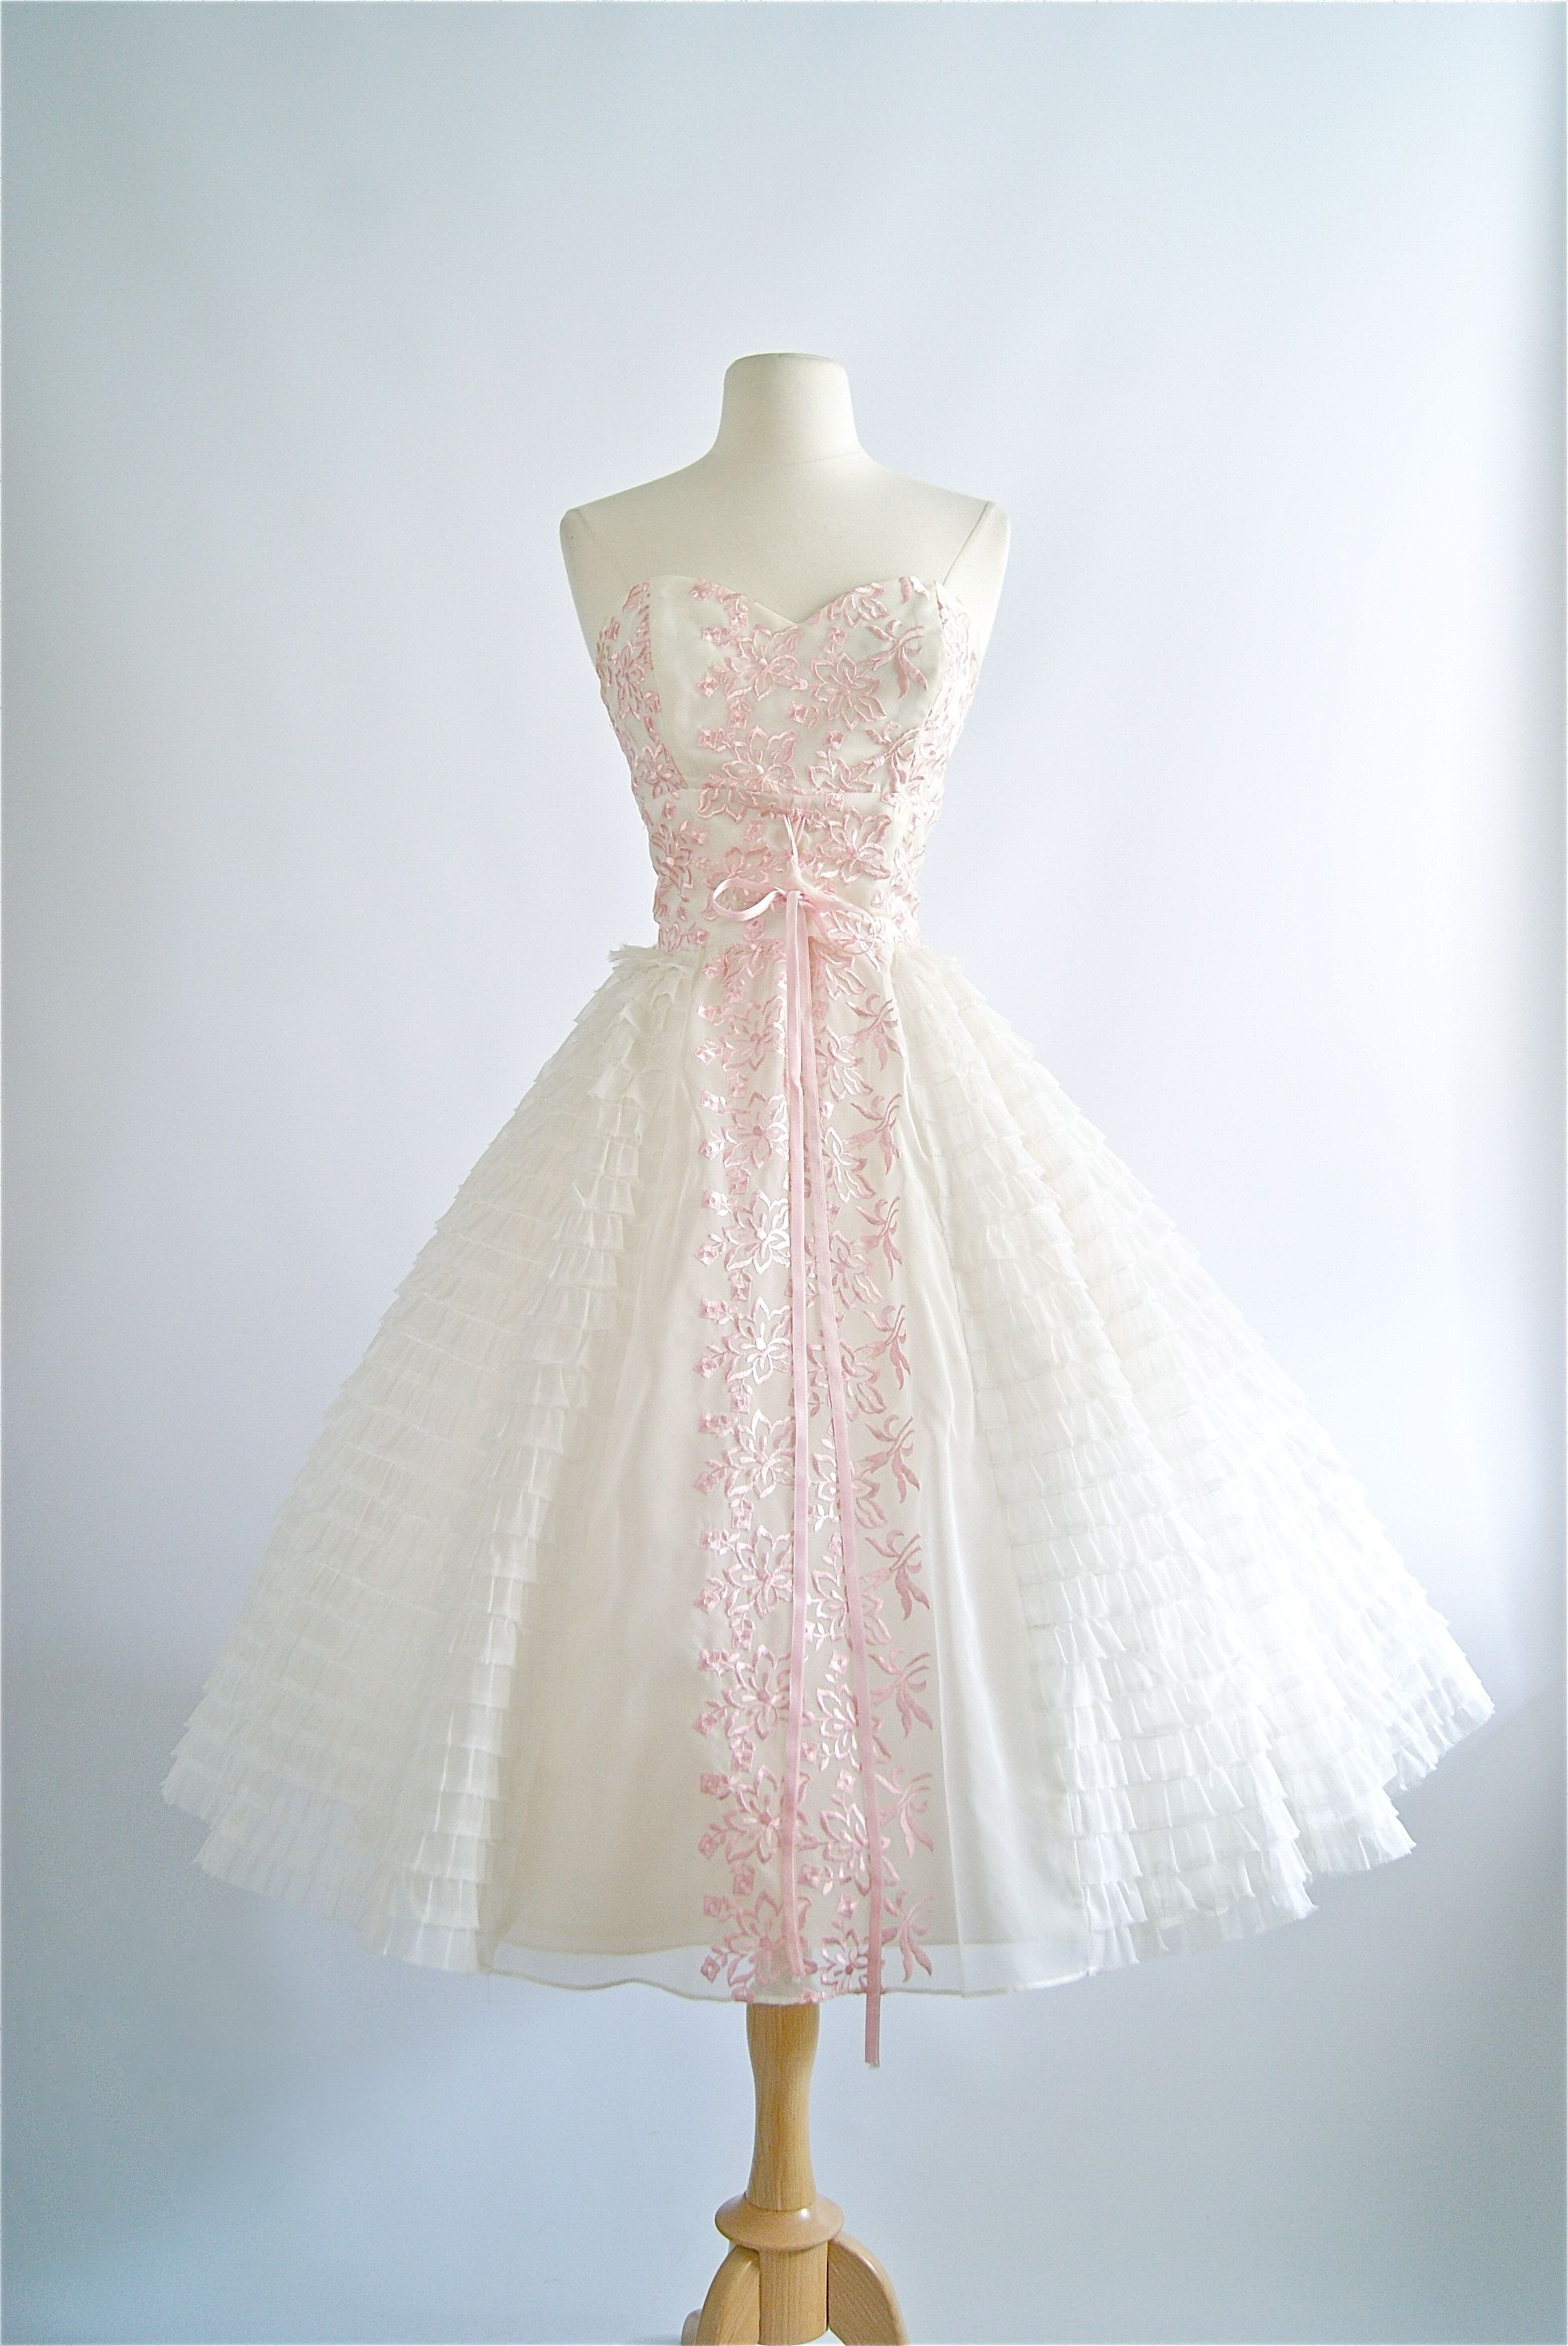 Vintage 1950 S Strapless Prom Dress With Pink Embroidery Vintagedress 1950sdress Vinta 50s Prom Dresses 1950s Wedding Dress Tea Length Prom Dresses Vintage [ 2896 x 1936 Pixel ]